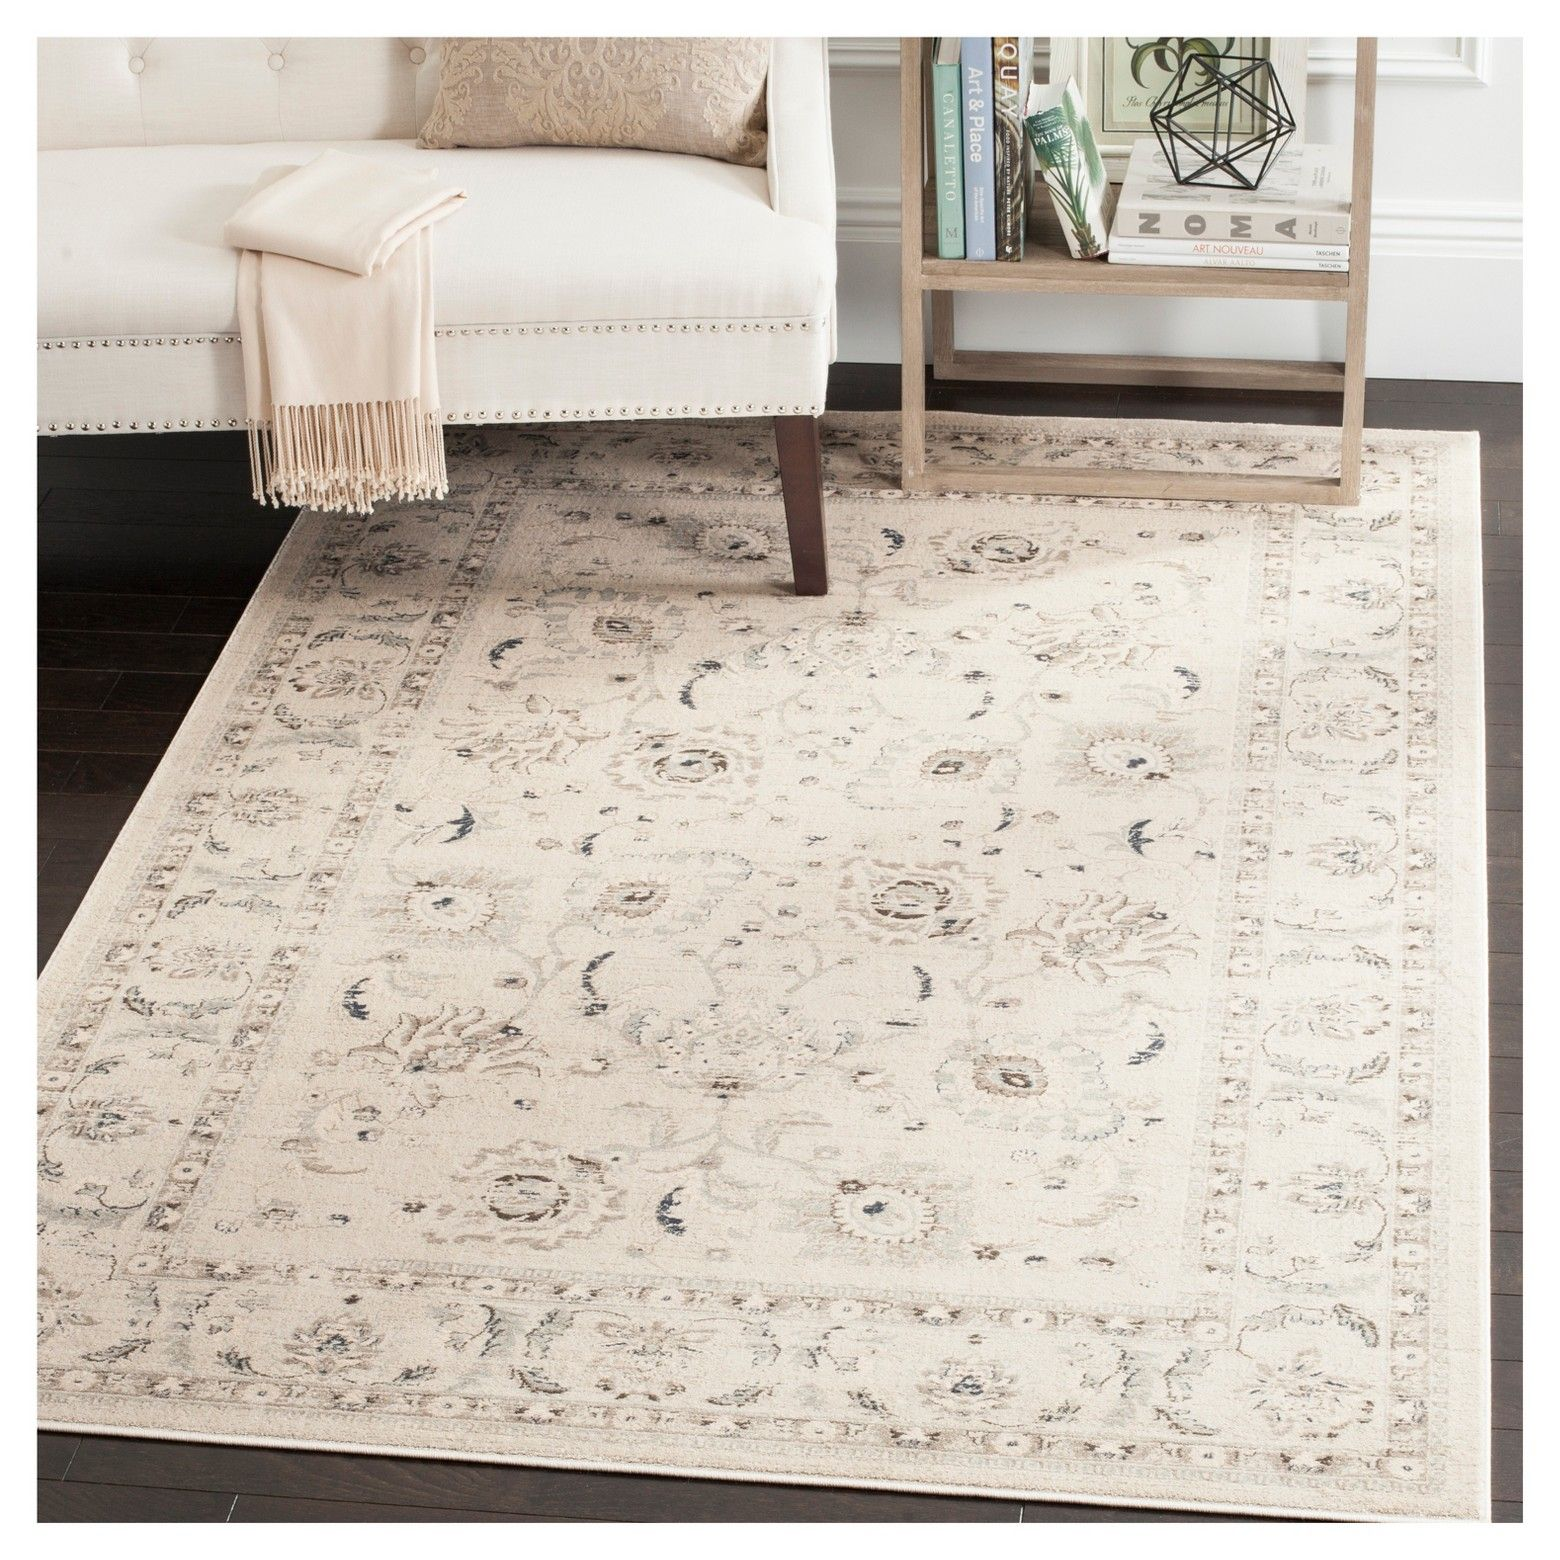 Bianca Vintage Rug Safavieh Distressed Rugs Vintage Area Rugs Country Area Rugs